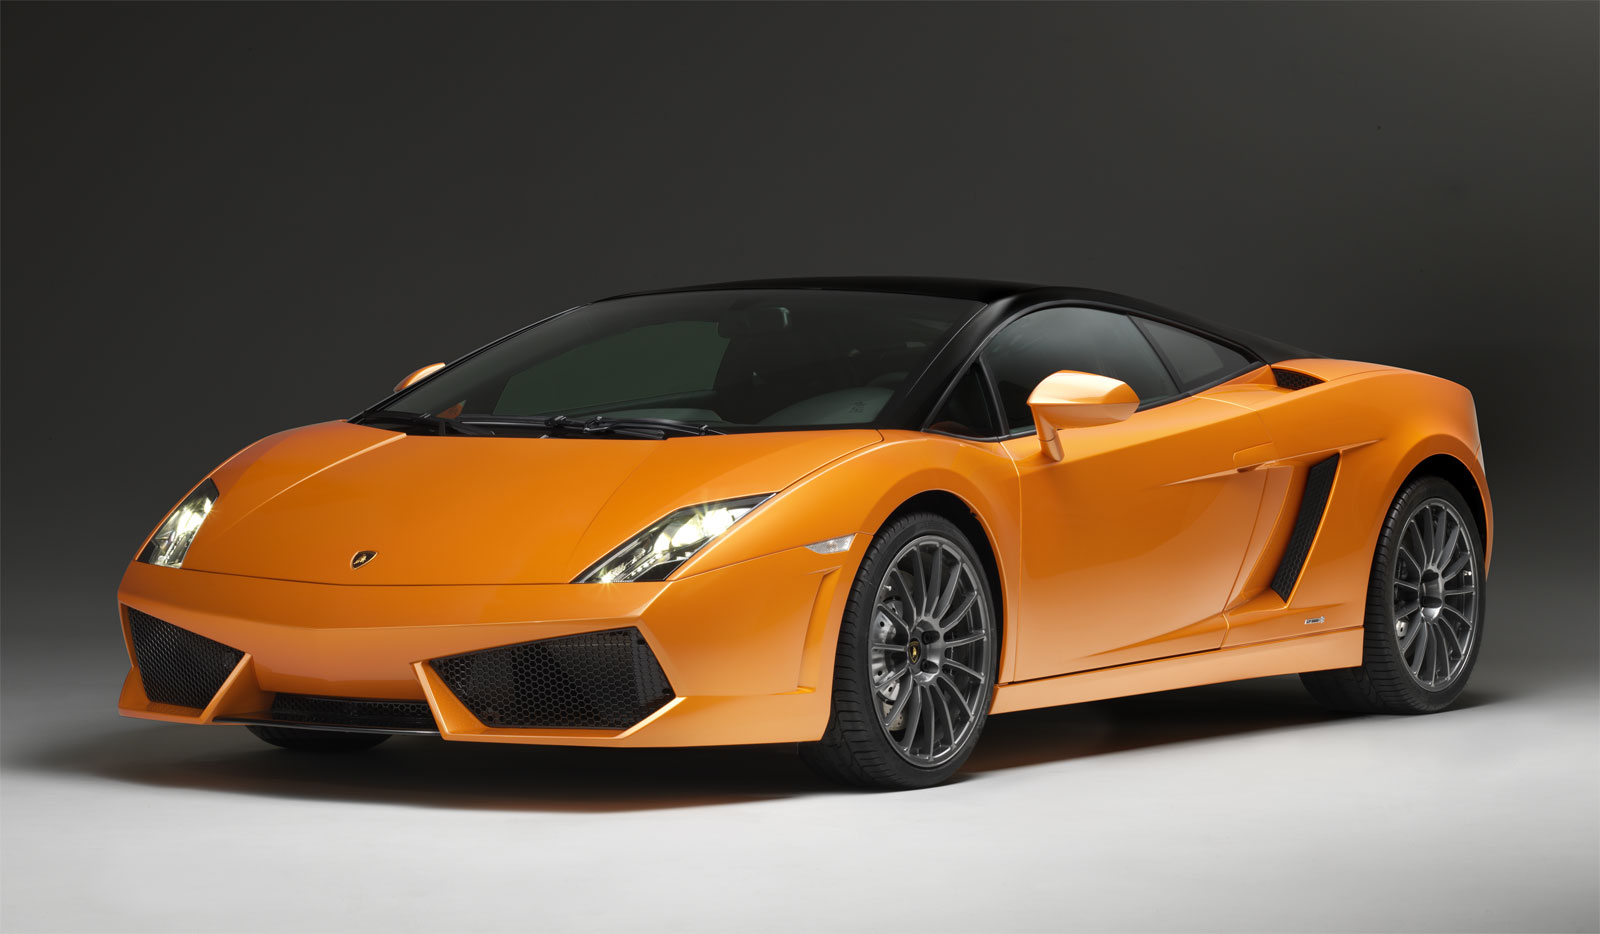 Lamborghini clipart sportscar Images Car Wallpapers WallpaperSafari Pics